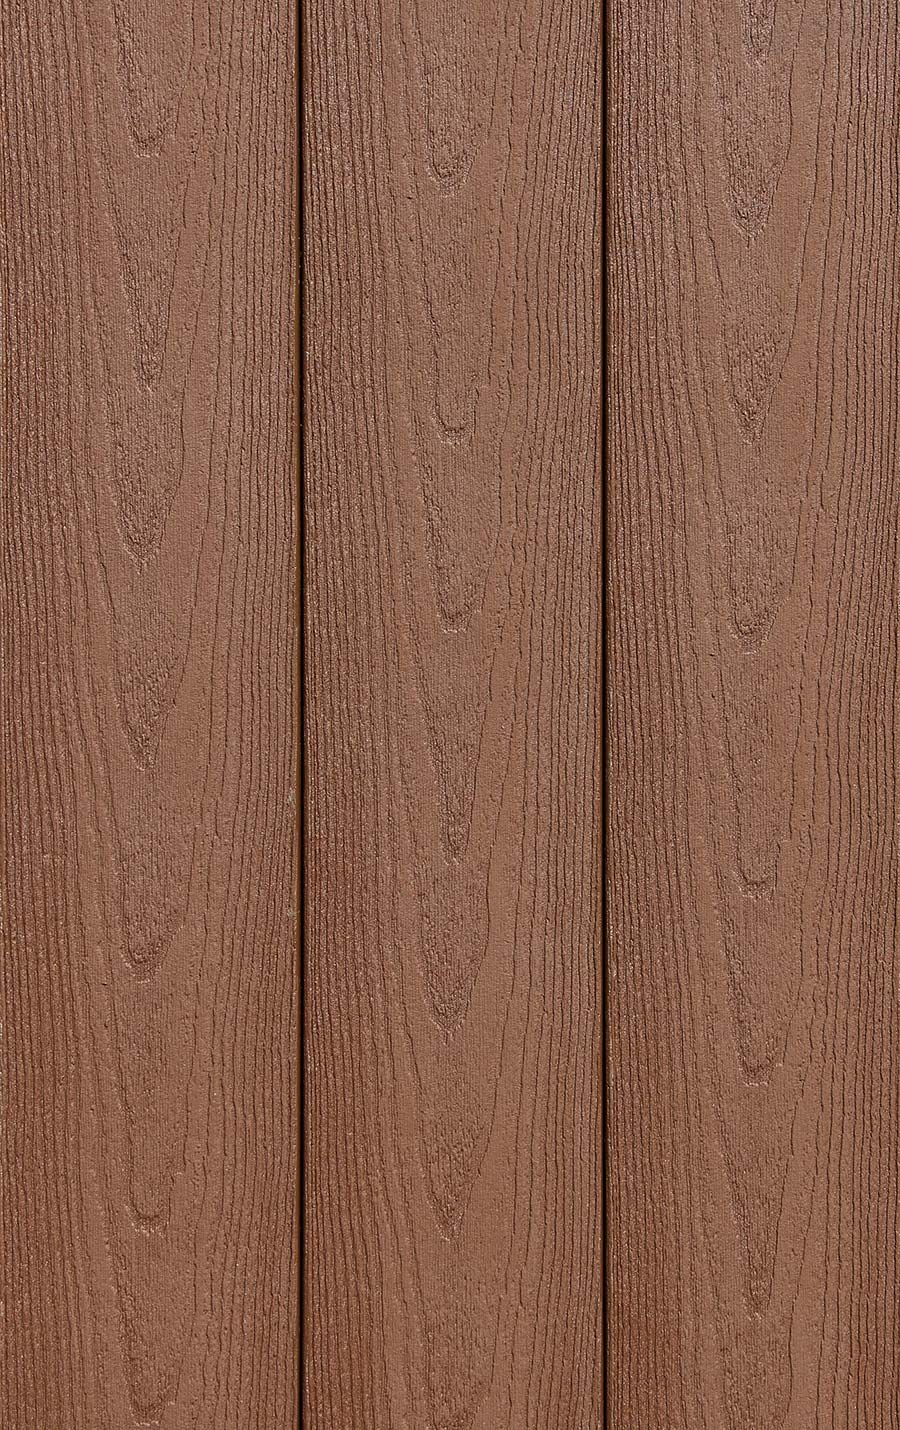 Image of composite decking color Tanned Leather for DuxxBak Decking in an armor cap finish.